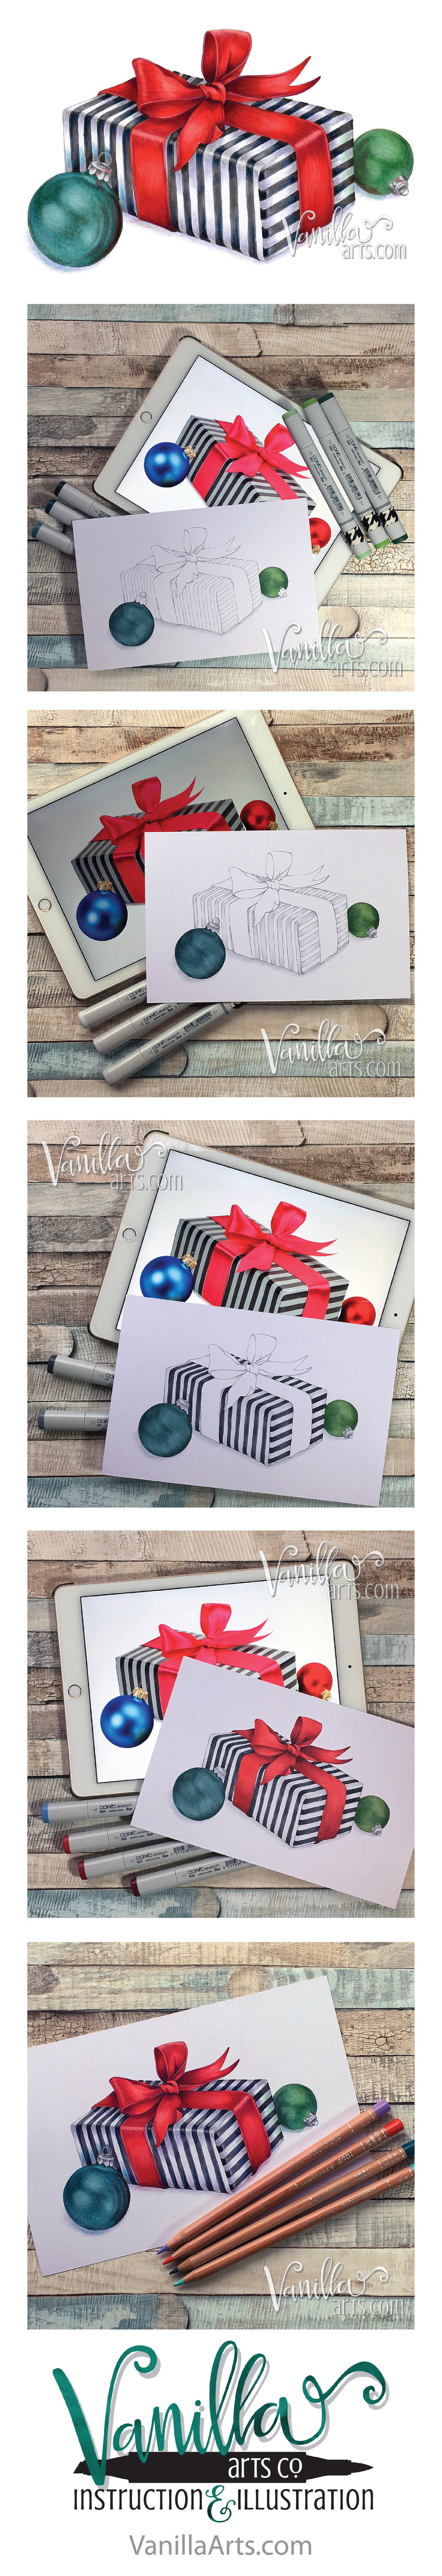 "Join the Free Digi Club to receive challenging stamp images designed for Copic, colored pencil, or watercolor. ""Satin Gift"" Dec 2016 